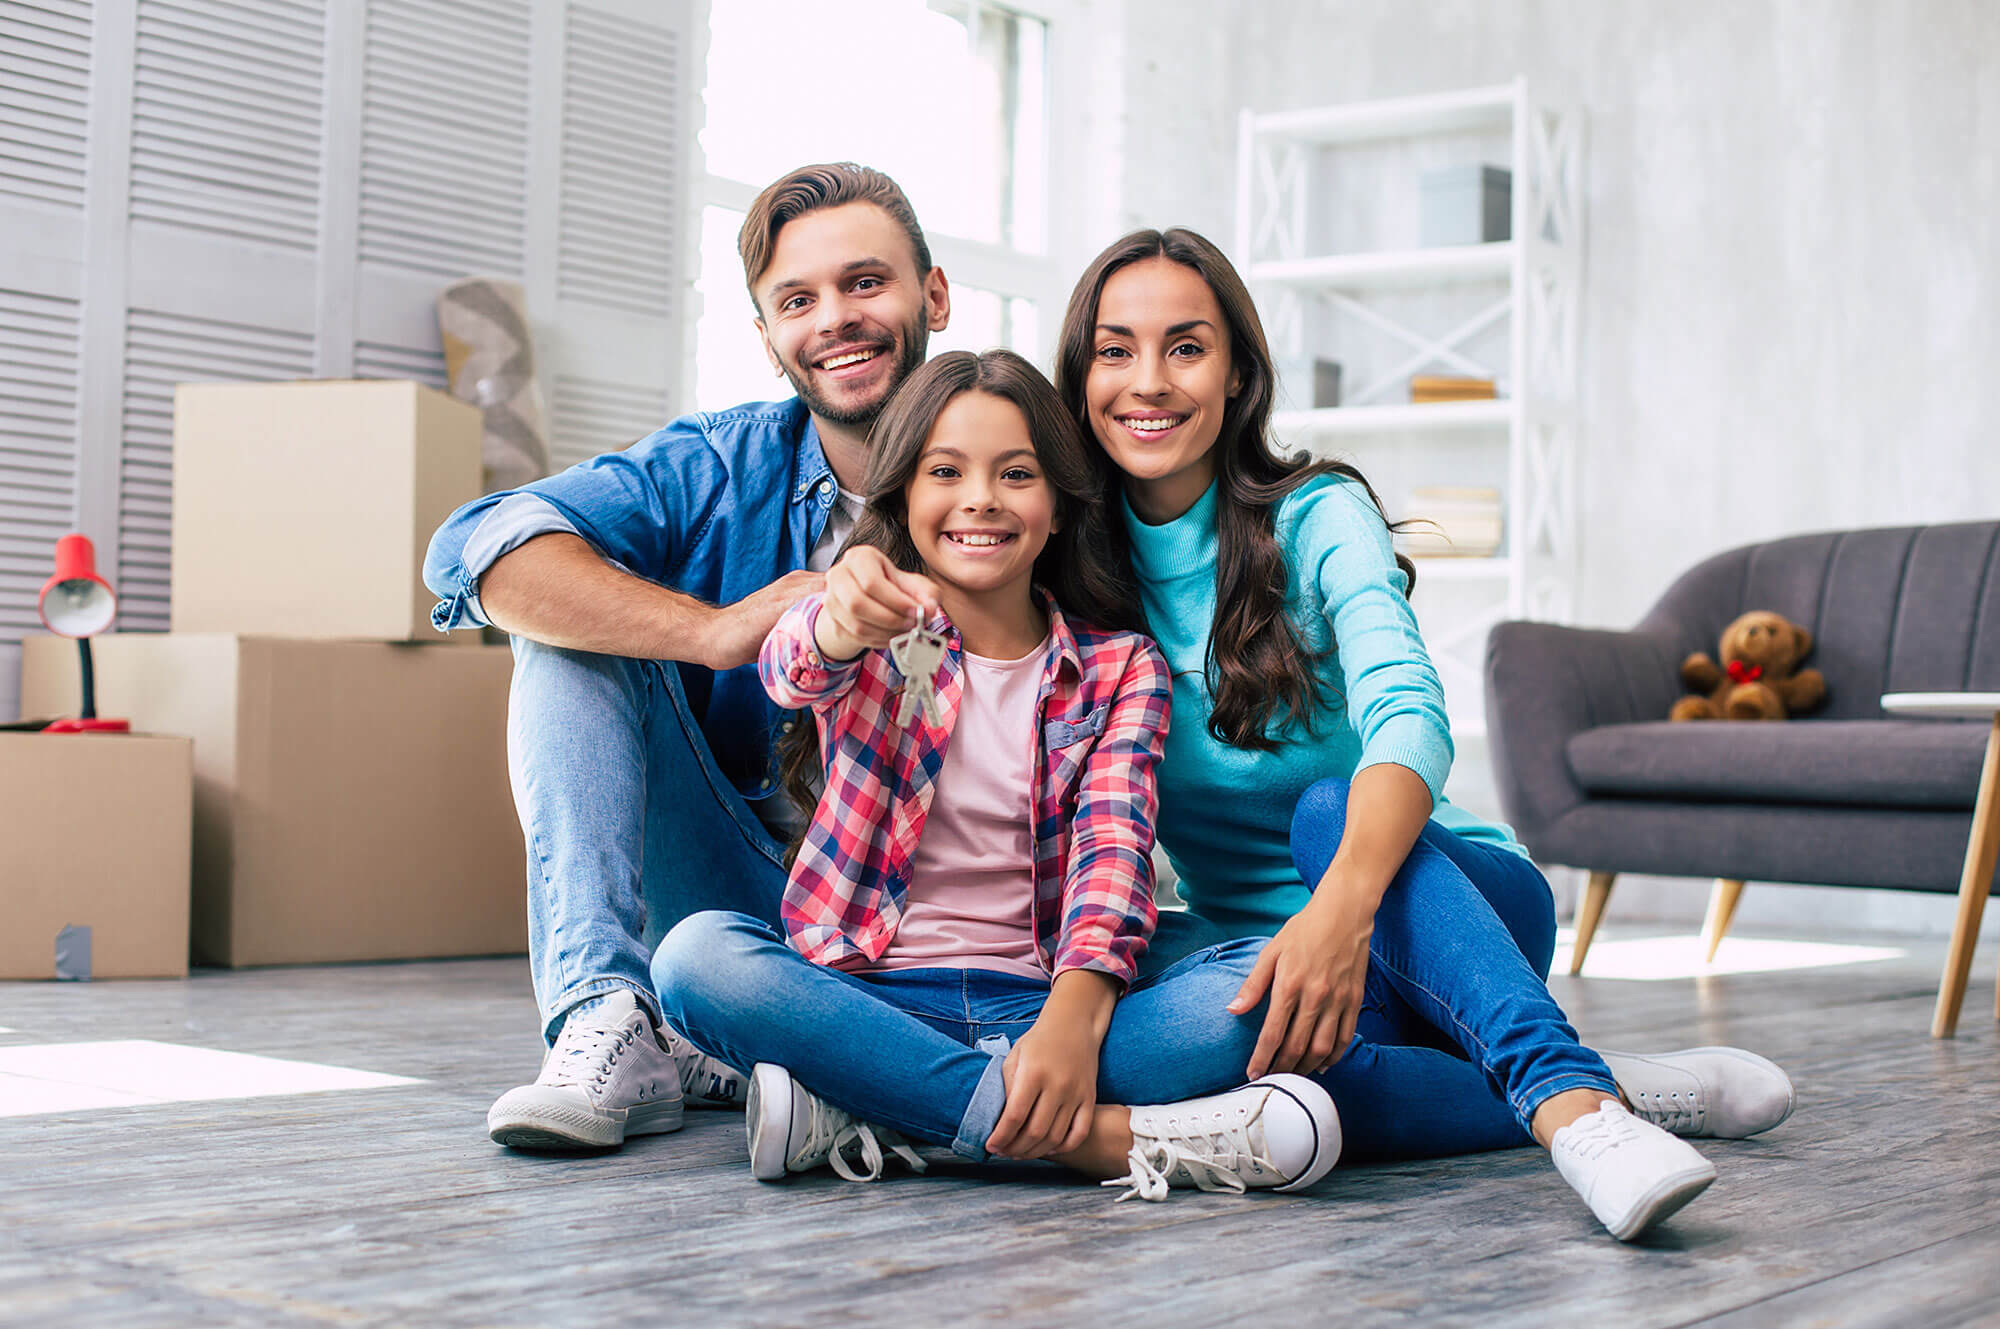 Photo of a Small Family sitting in front of Boxes holding Keys